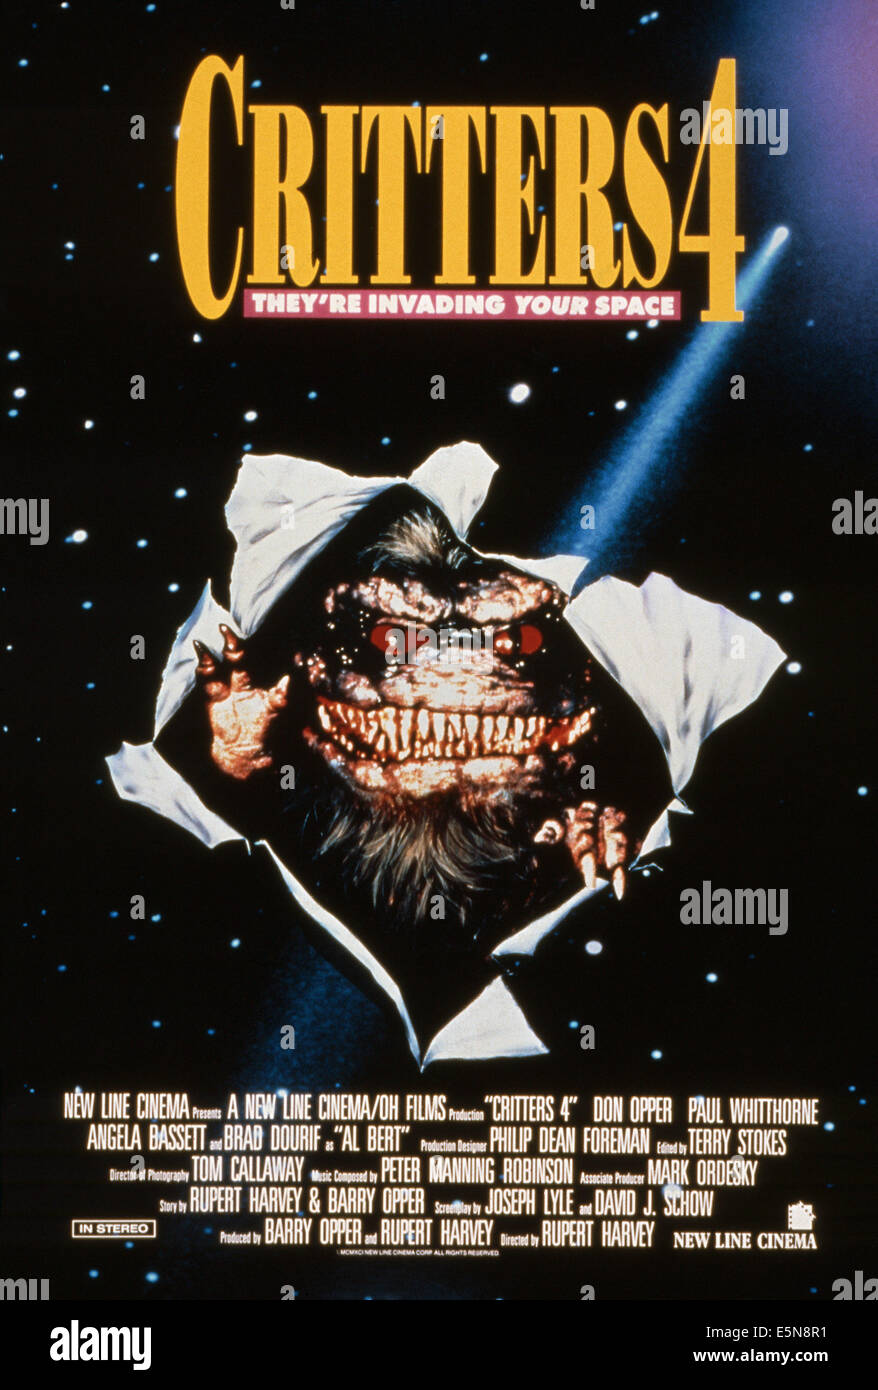 critters 4 us poster 1992 169new line cinemacourtesy